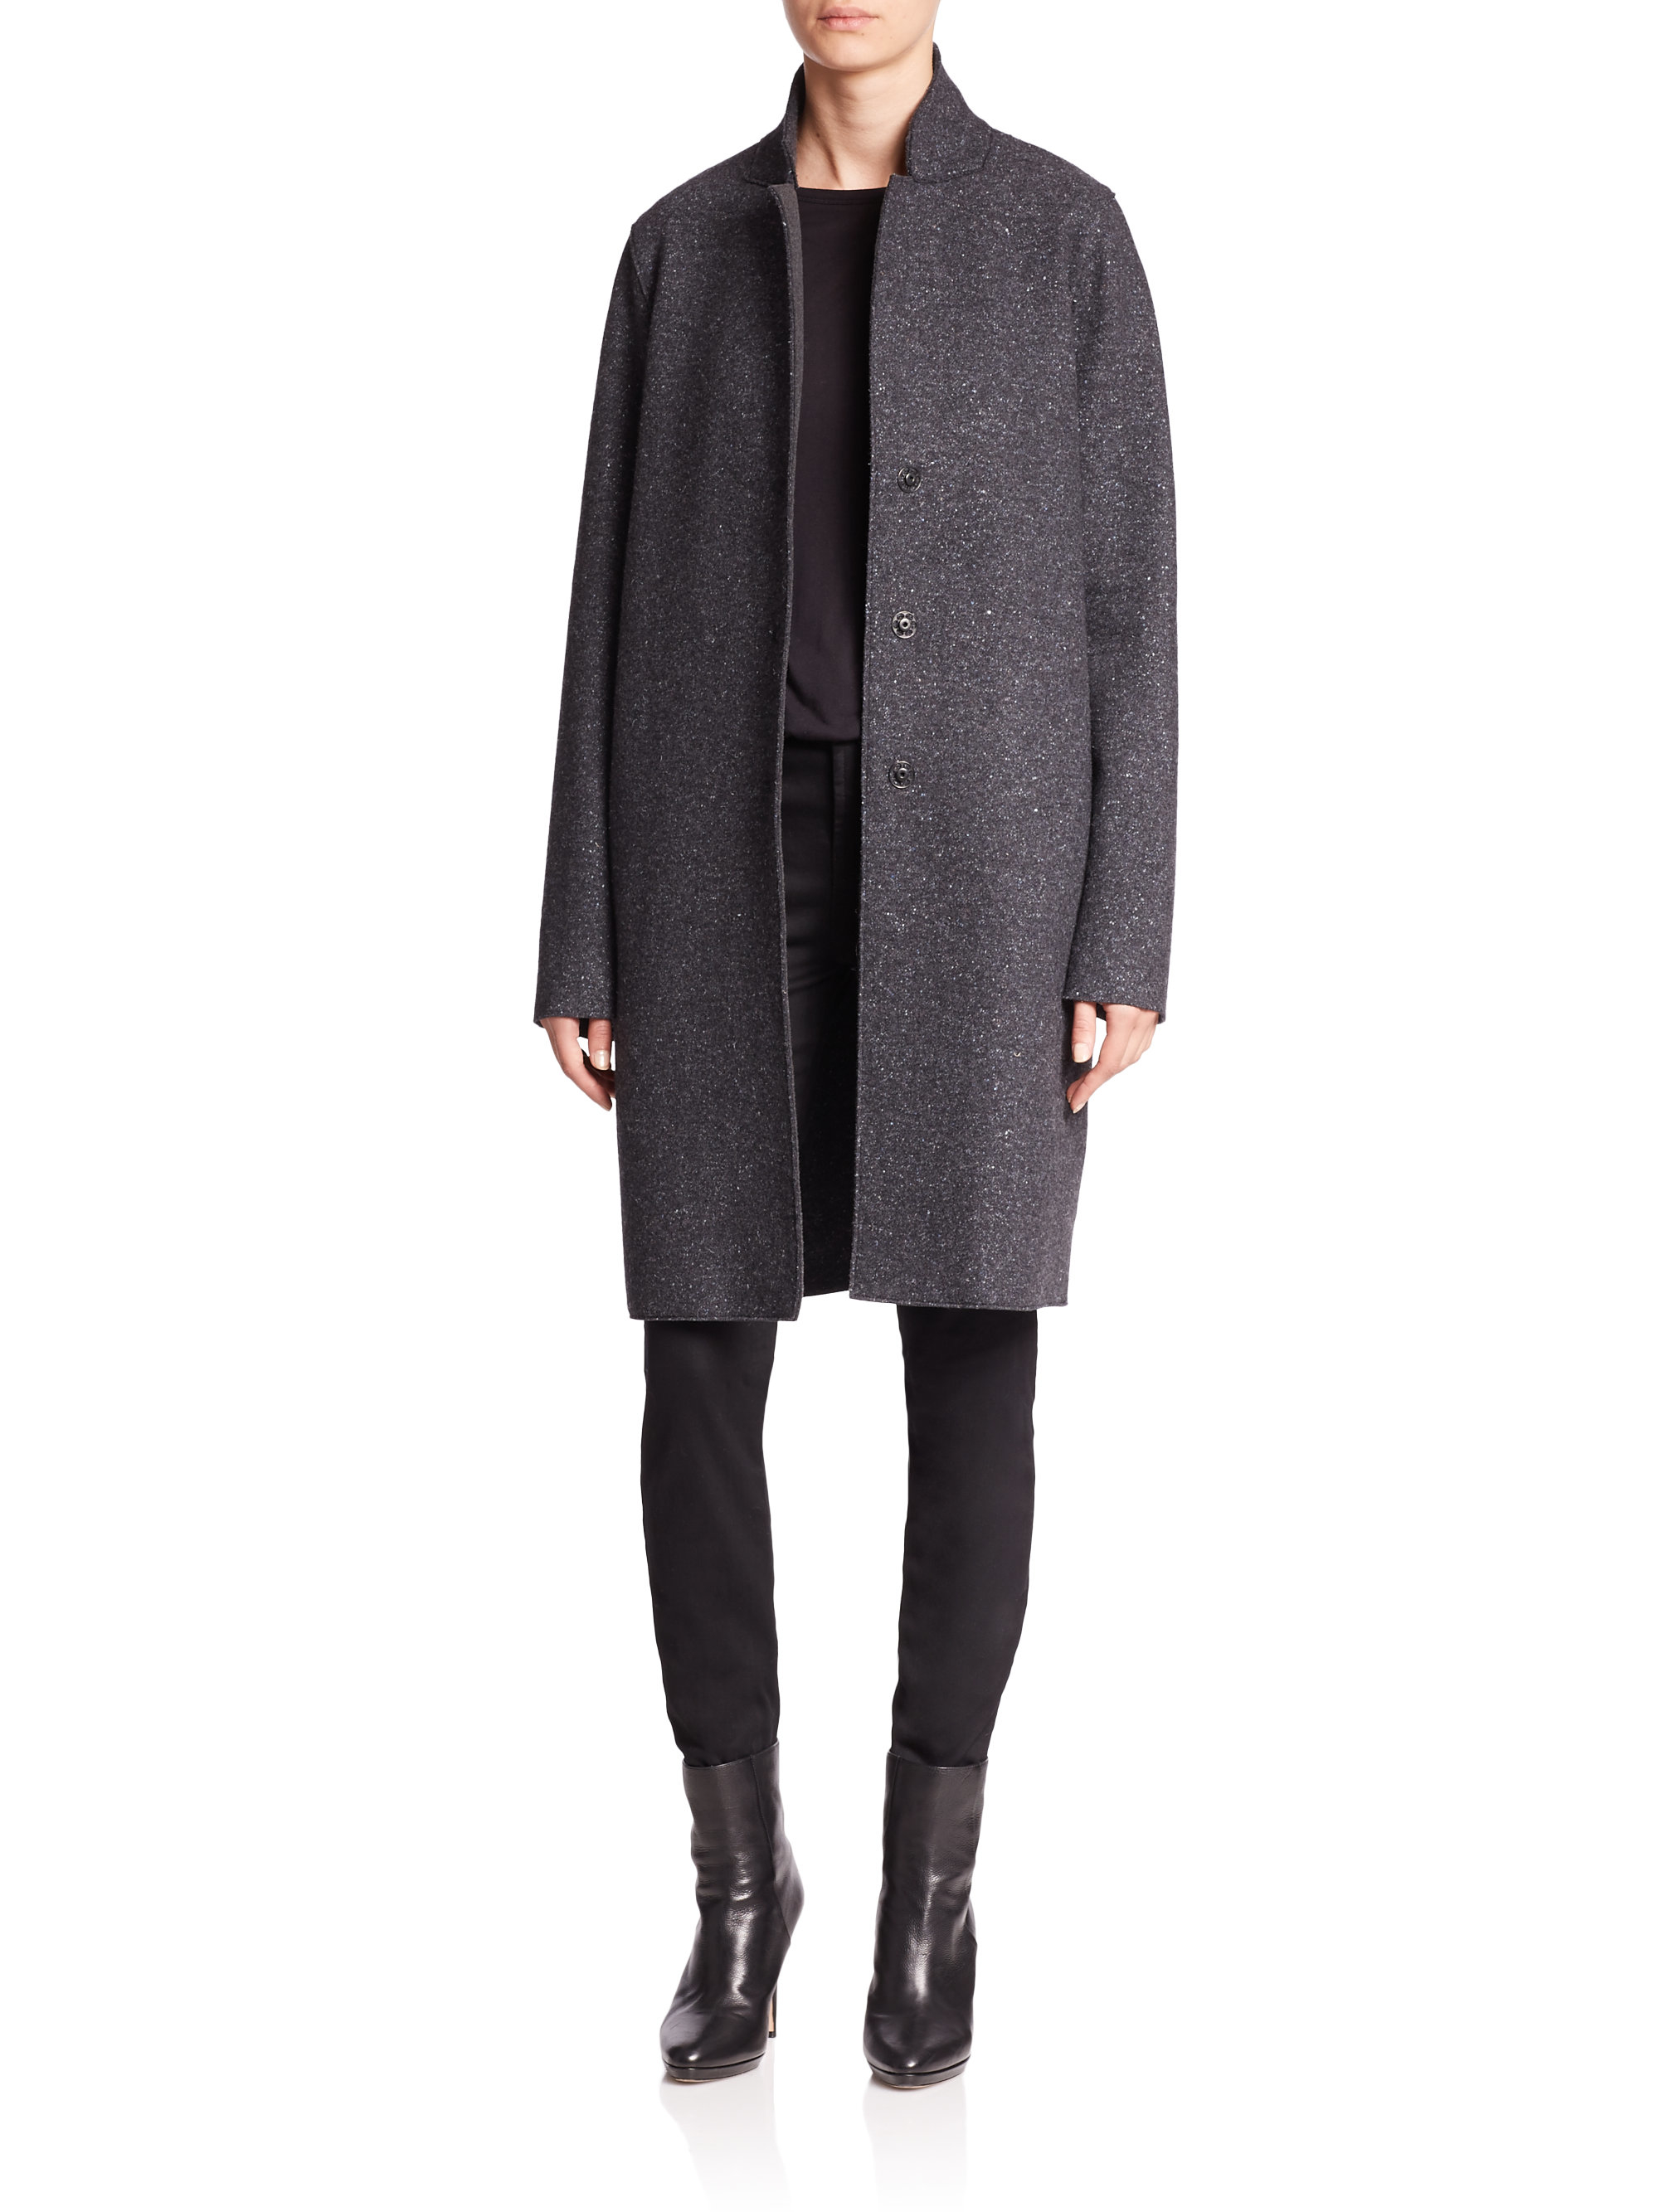 harris wharf london knit cocoon coat in gray lyst. Black Bedroom Furniture Sets. Home Design Ideas